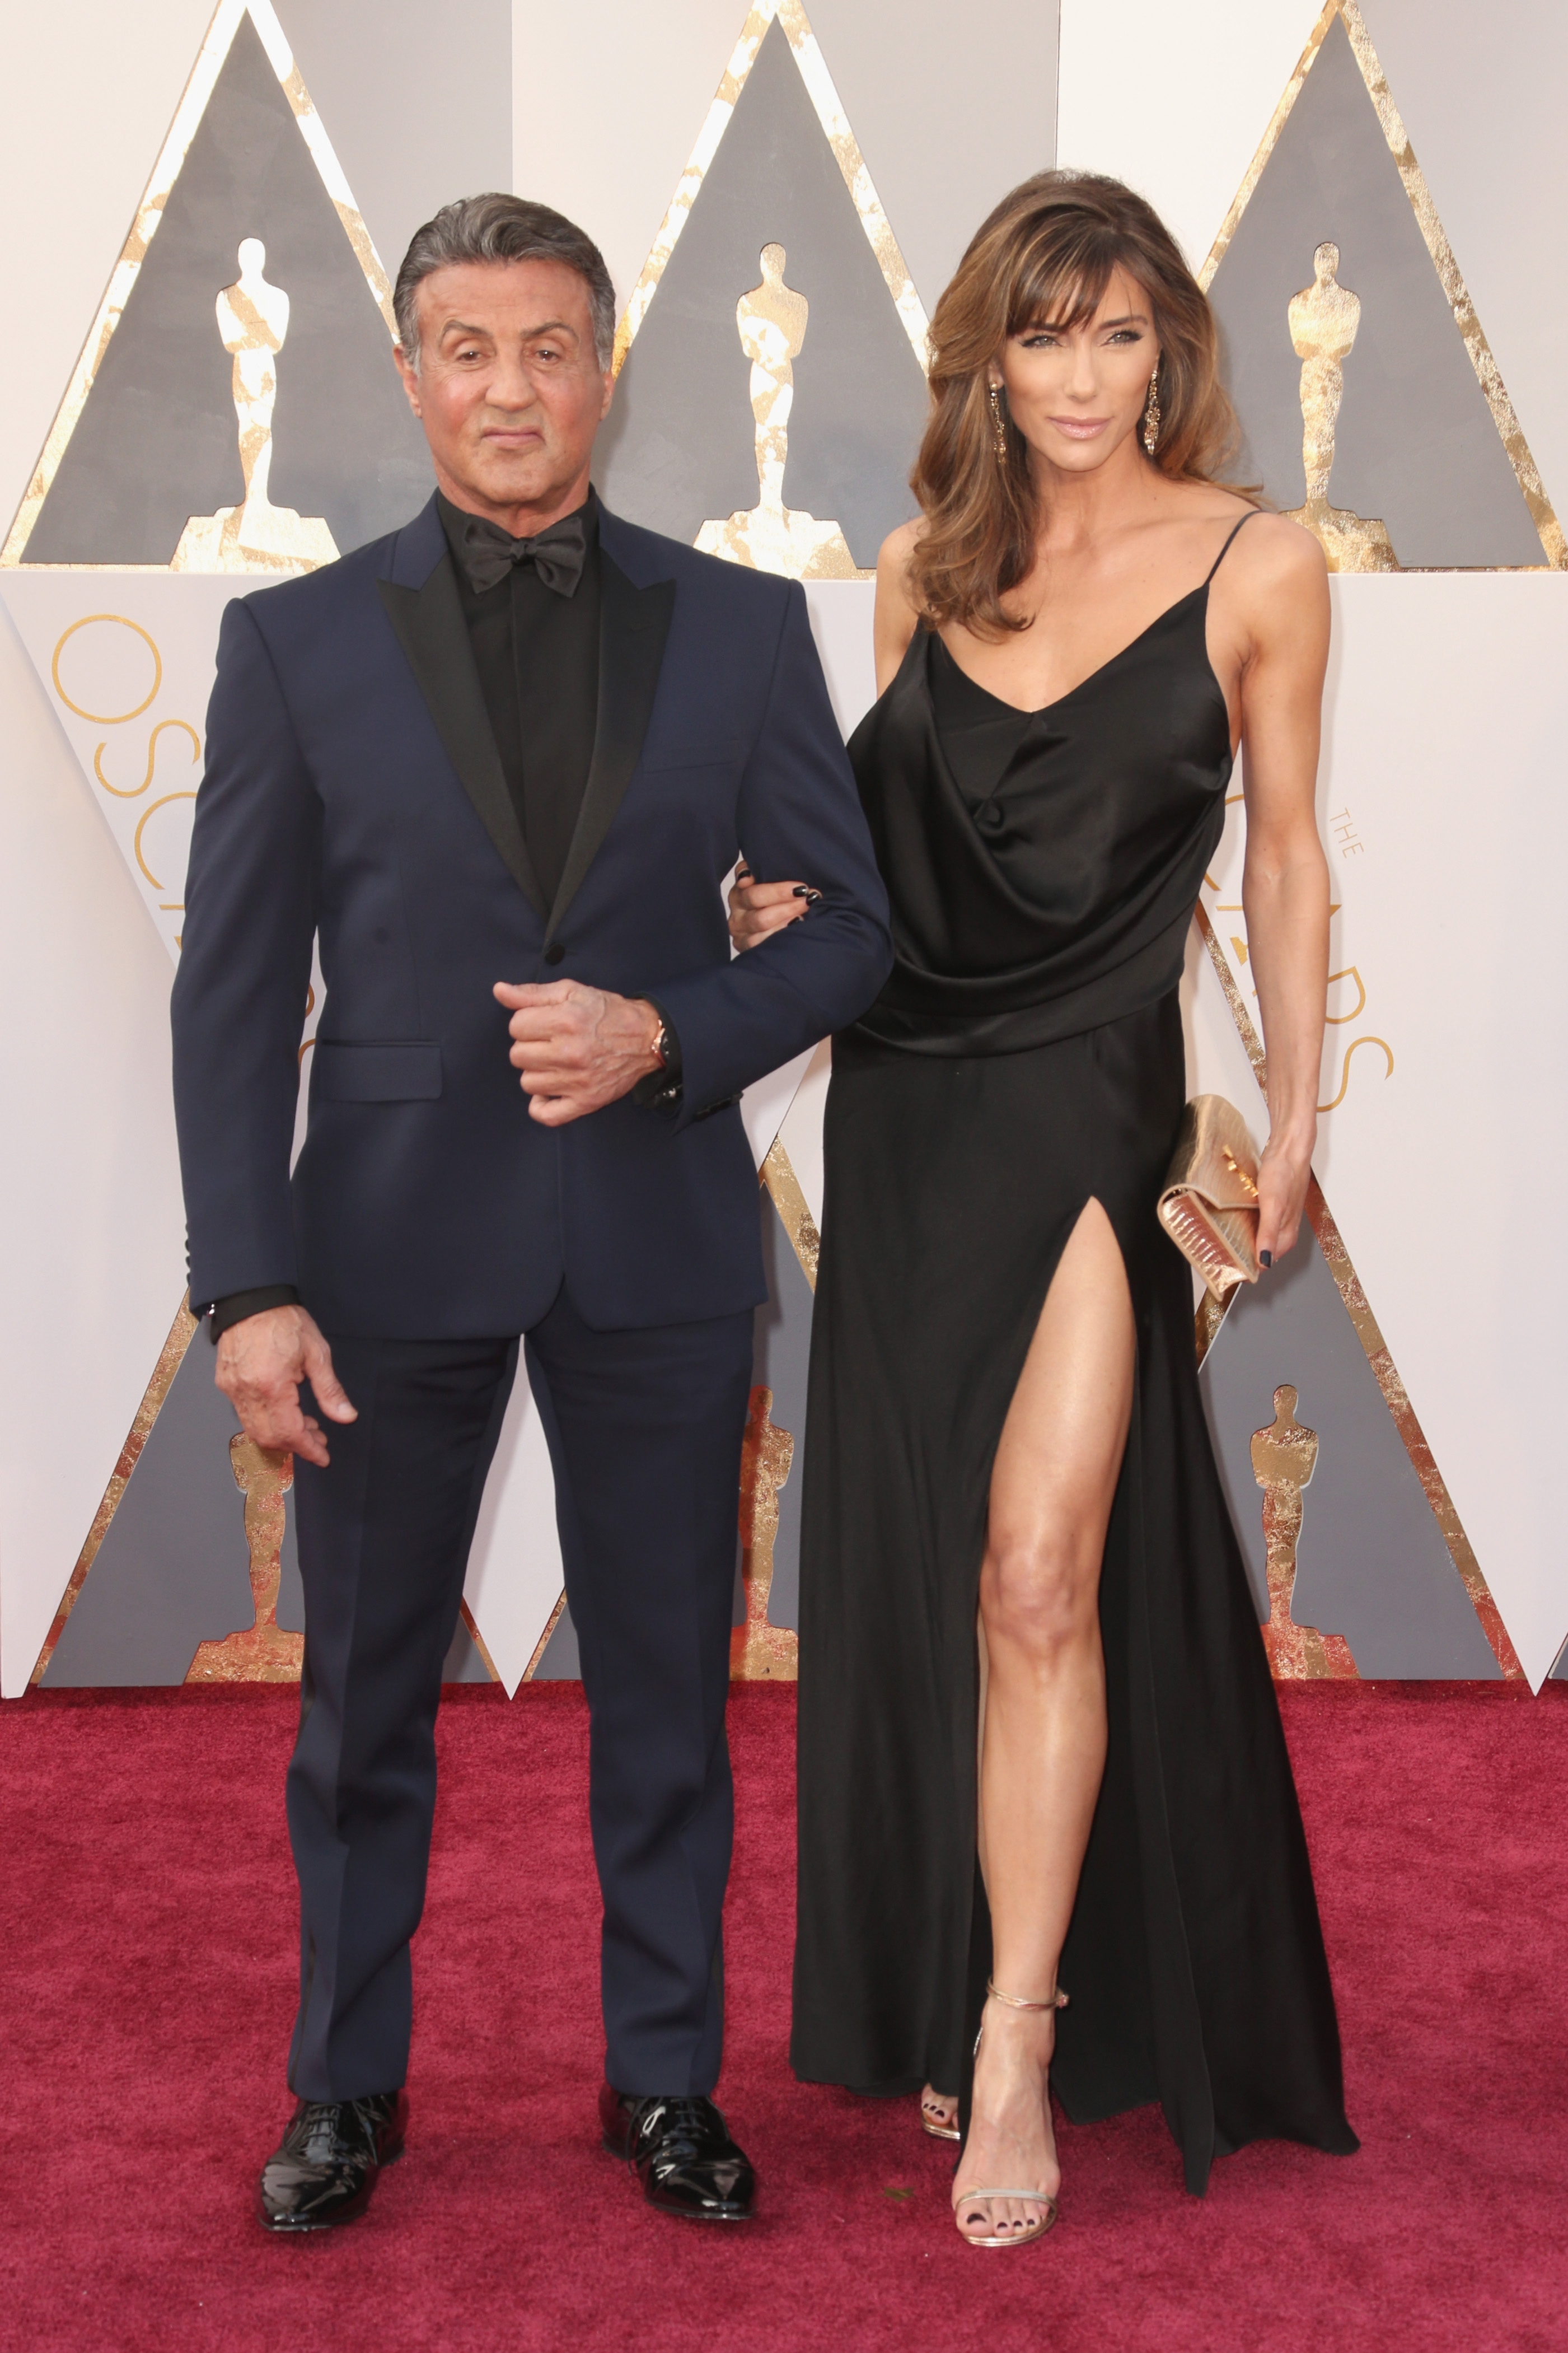 Sylvester Stallone and Jennifer Flavin attend the 88th Annual Academy Awards on Feb. 28, 2016 in Hollywood, Calif.